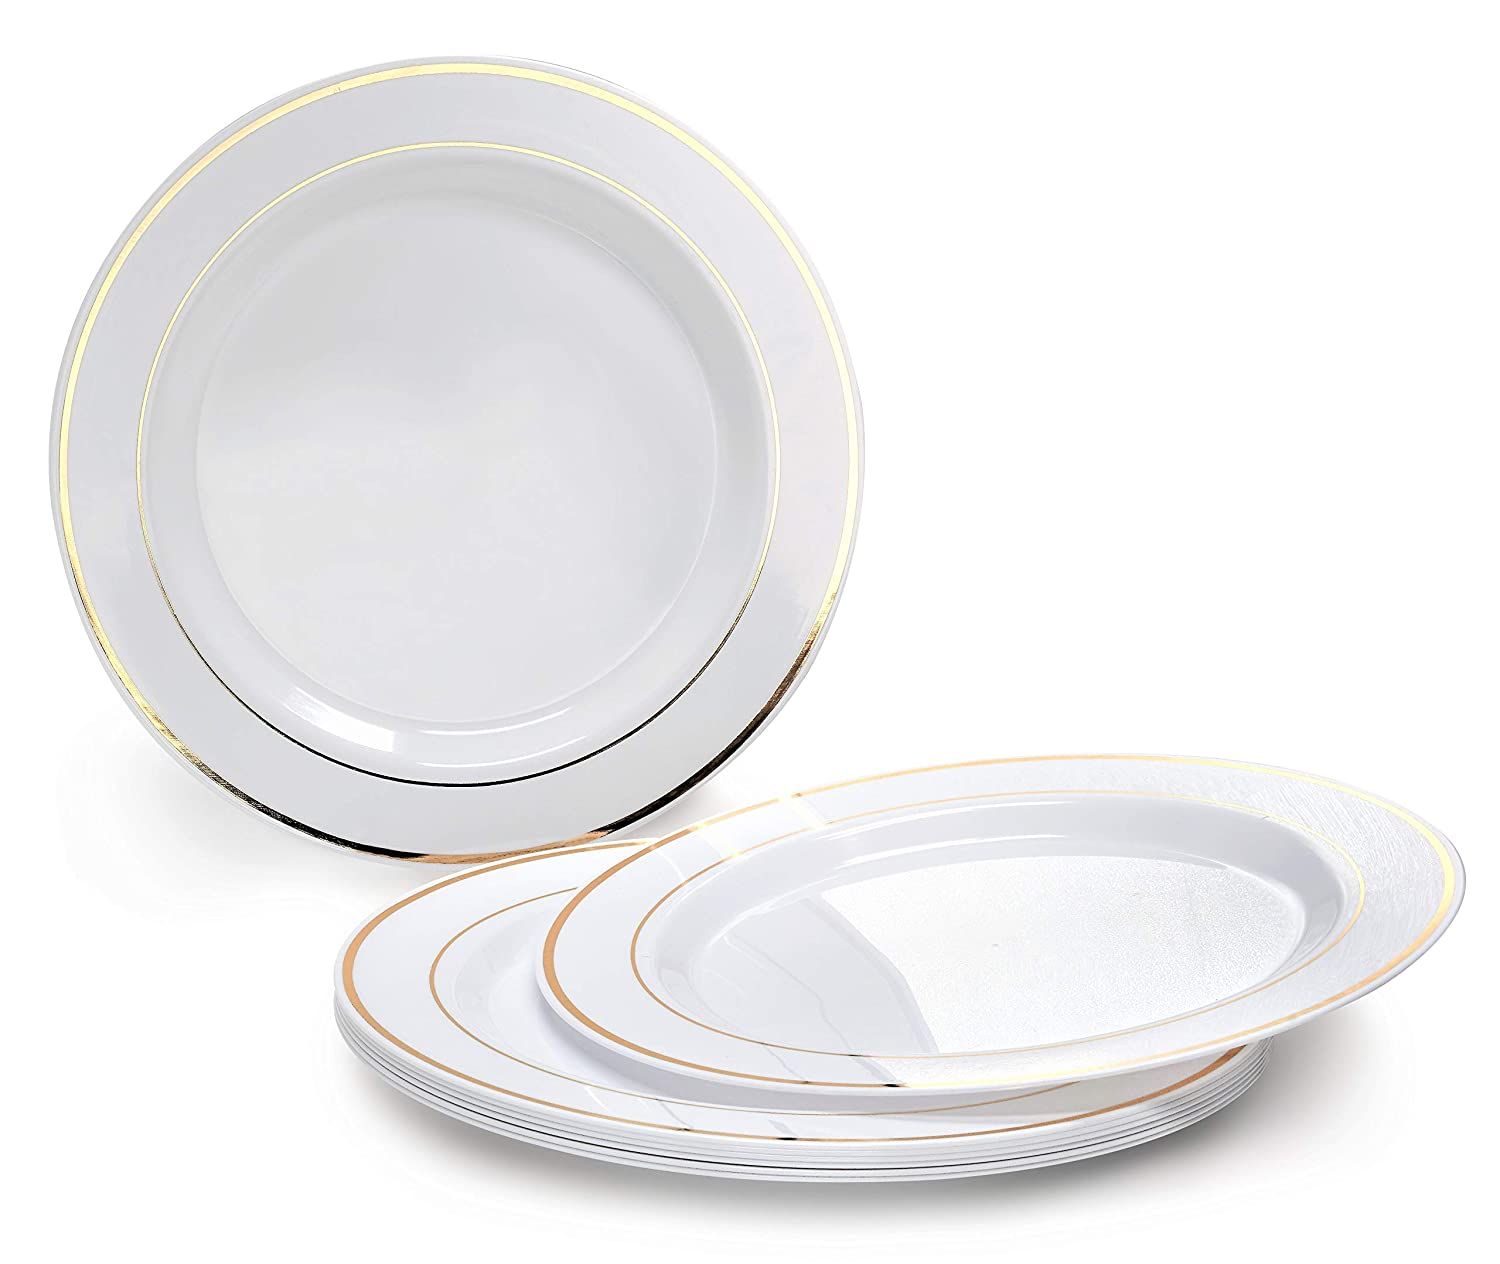 Plastic Wedding Plates.Occasions 120 Plates Pack Heavyweight Disposable Wedding Party Plastic Plates 10 5 Dinner Plate White Gold Rim